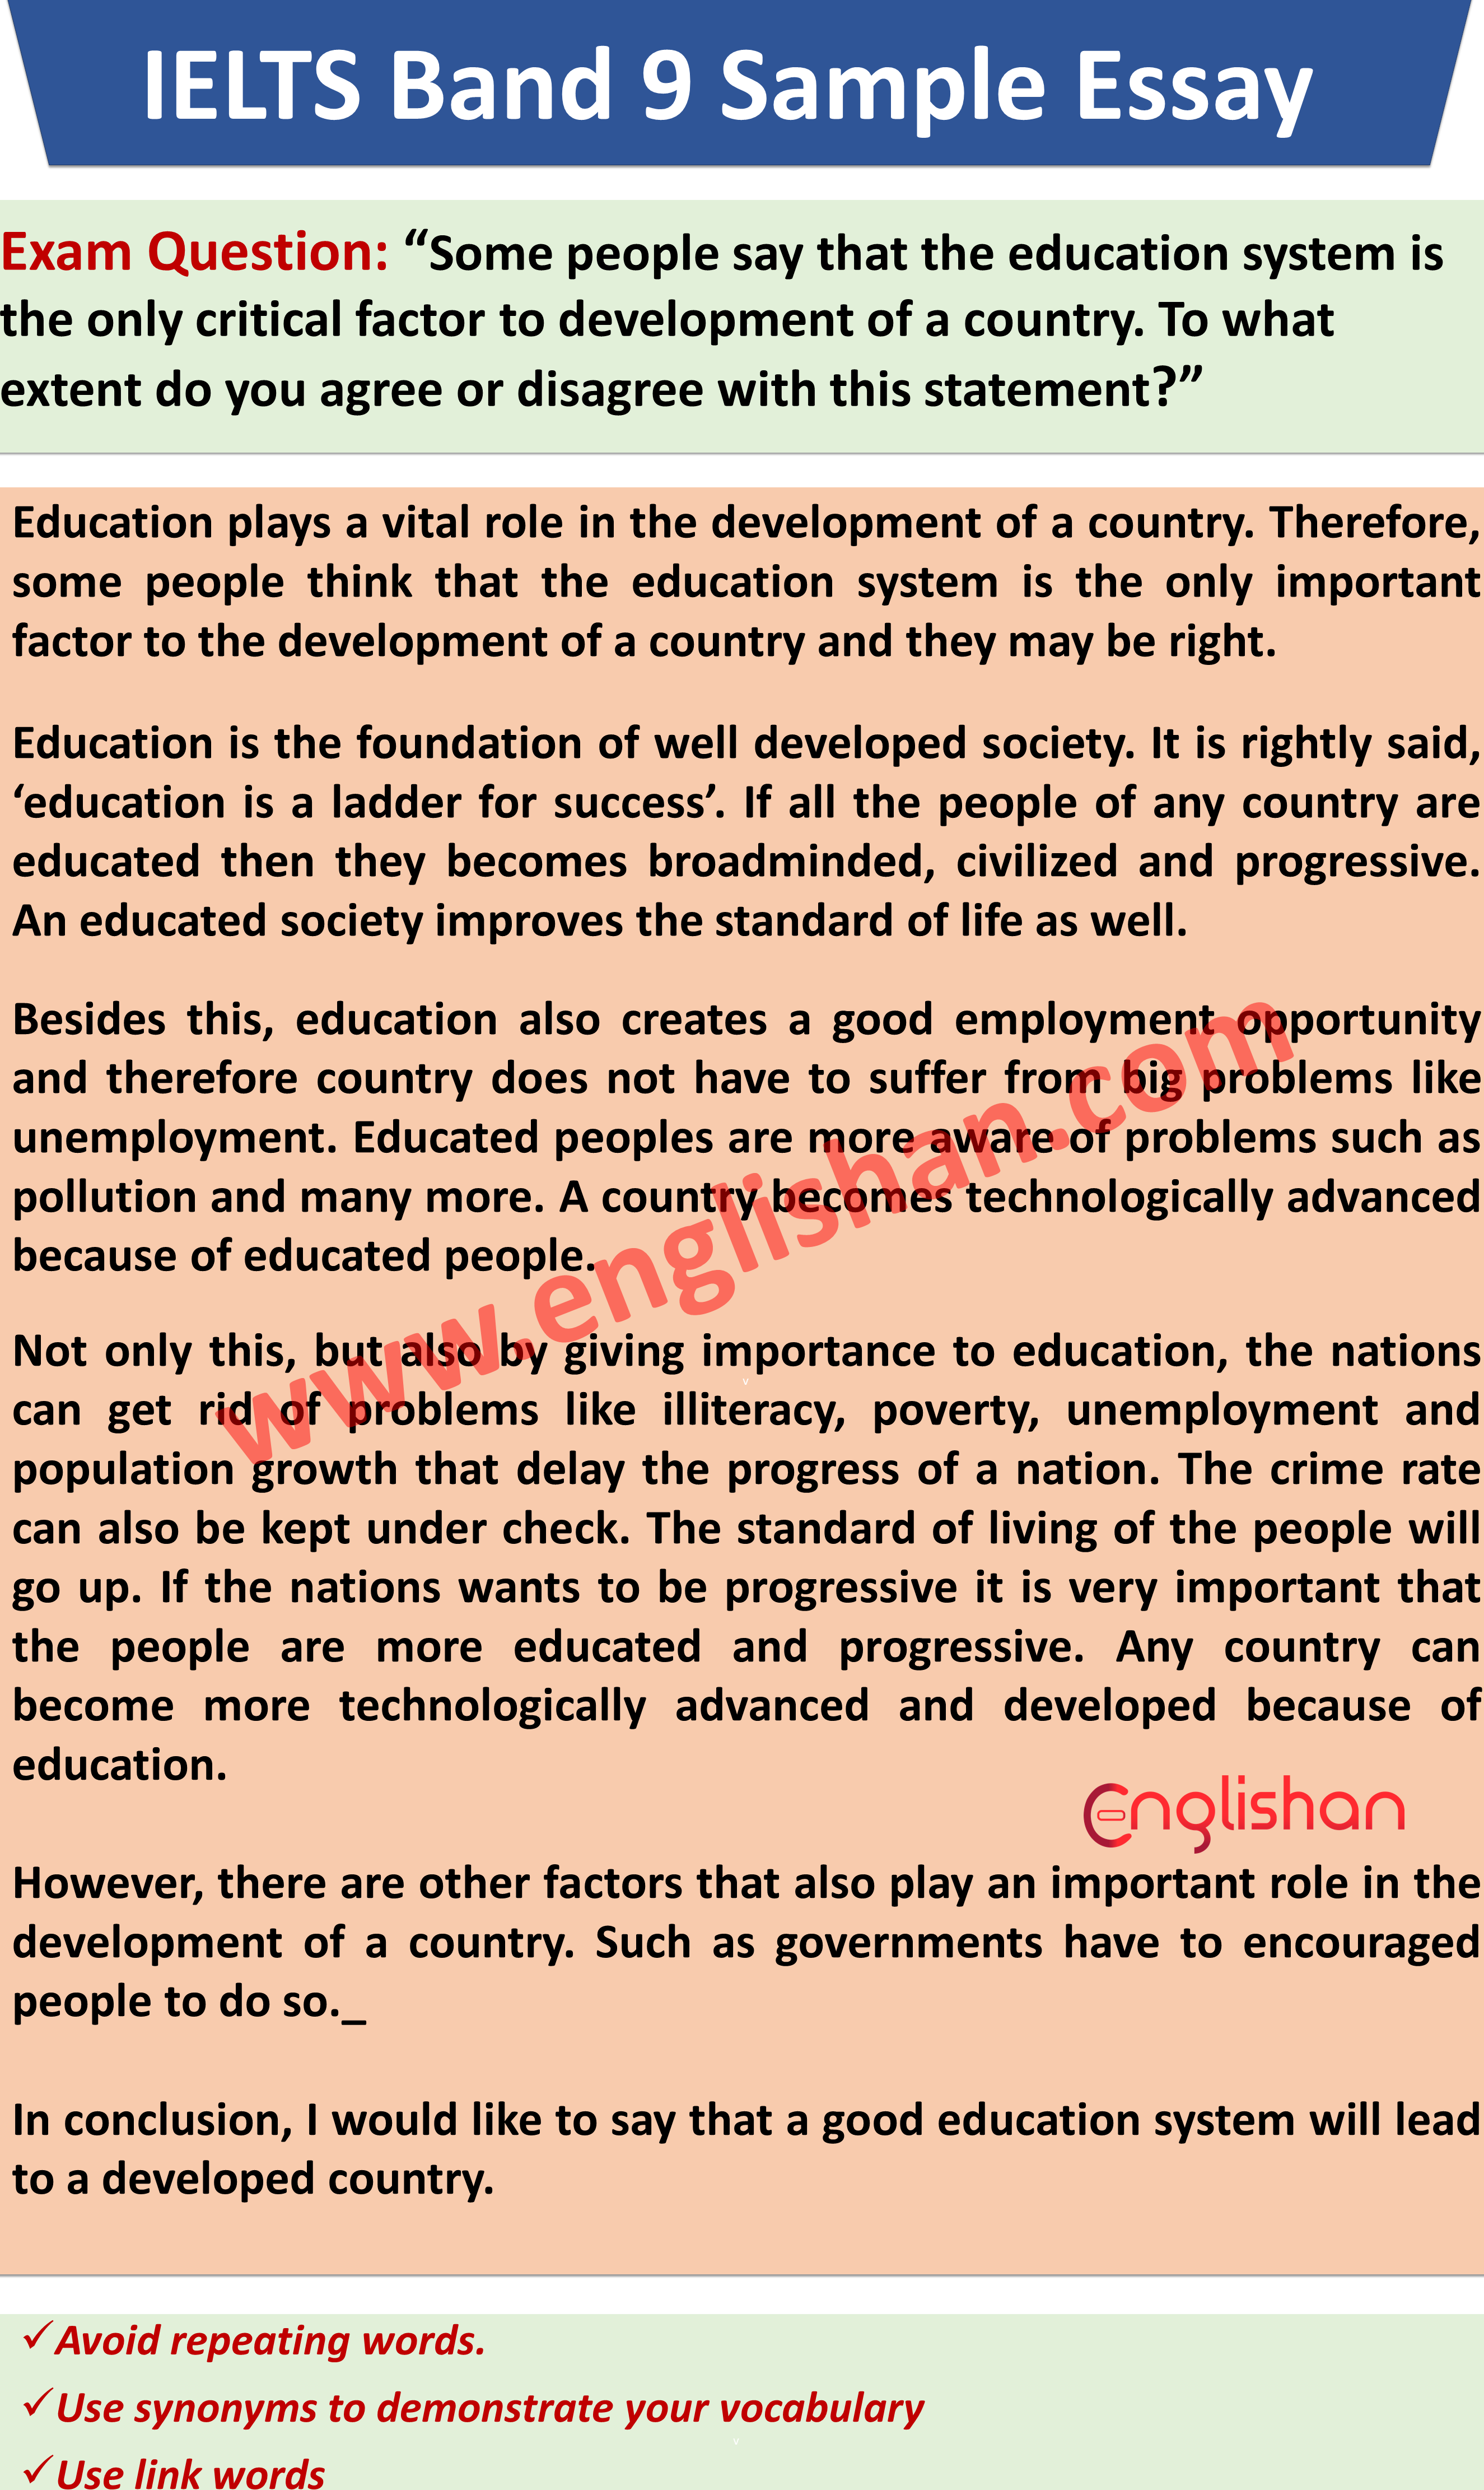 Ielt Writing Sample Band 7 2020 Essay Example Skills Pollution Conclusion Plastic Land